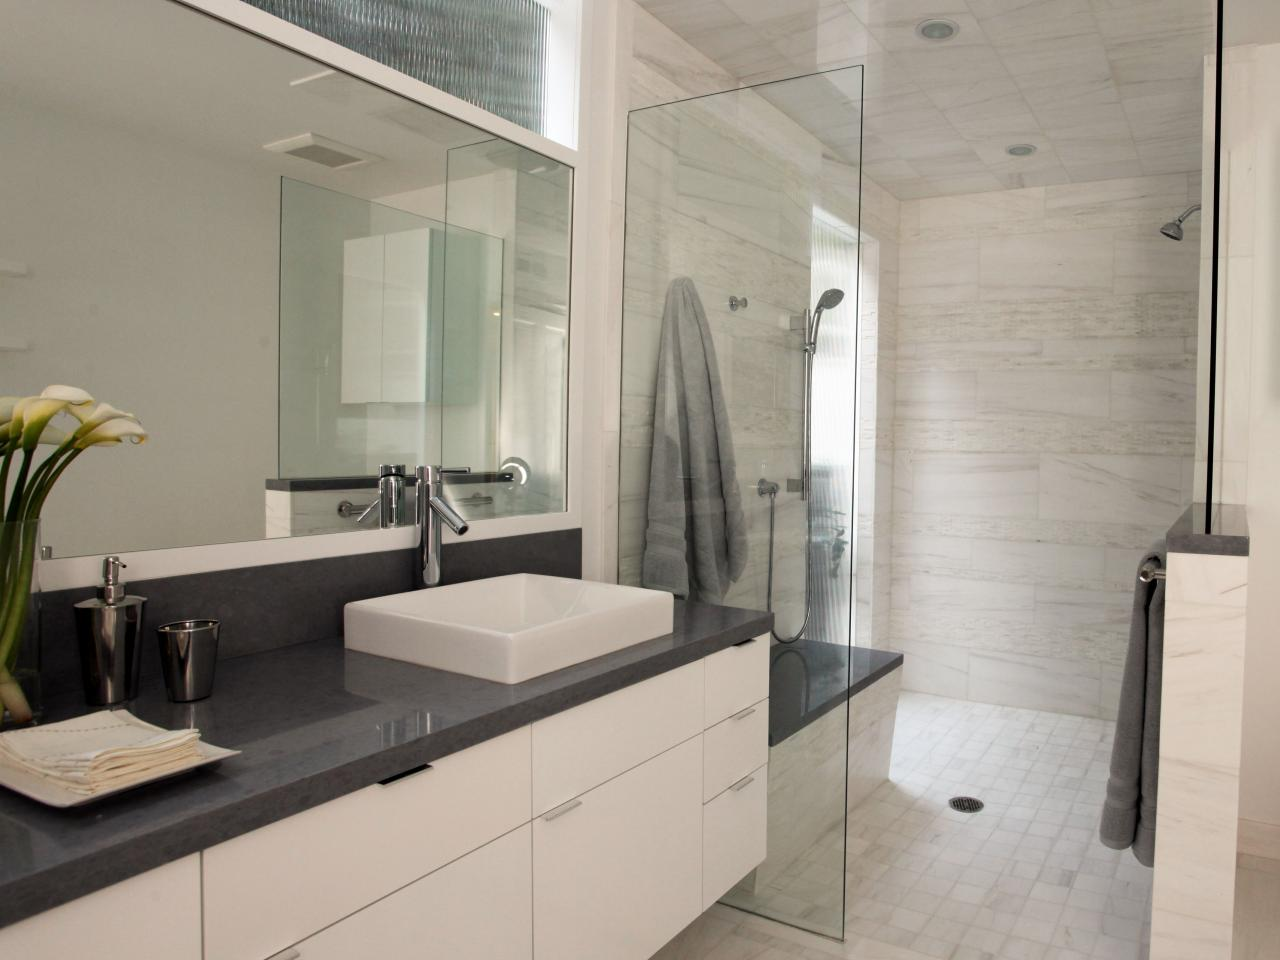 Photo page hgtv - Modern bathroom images ...